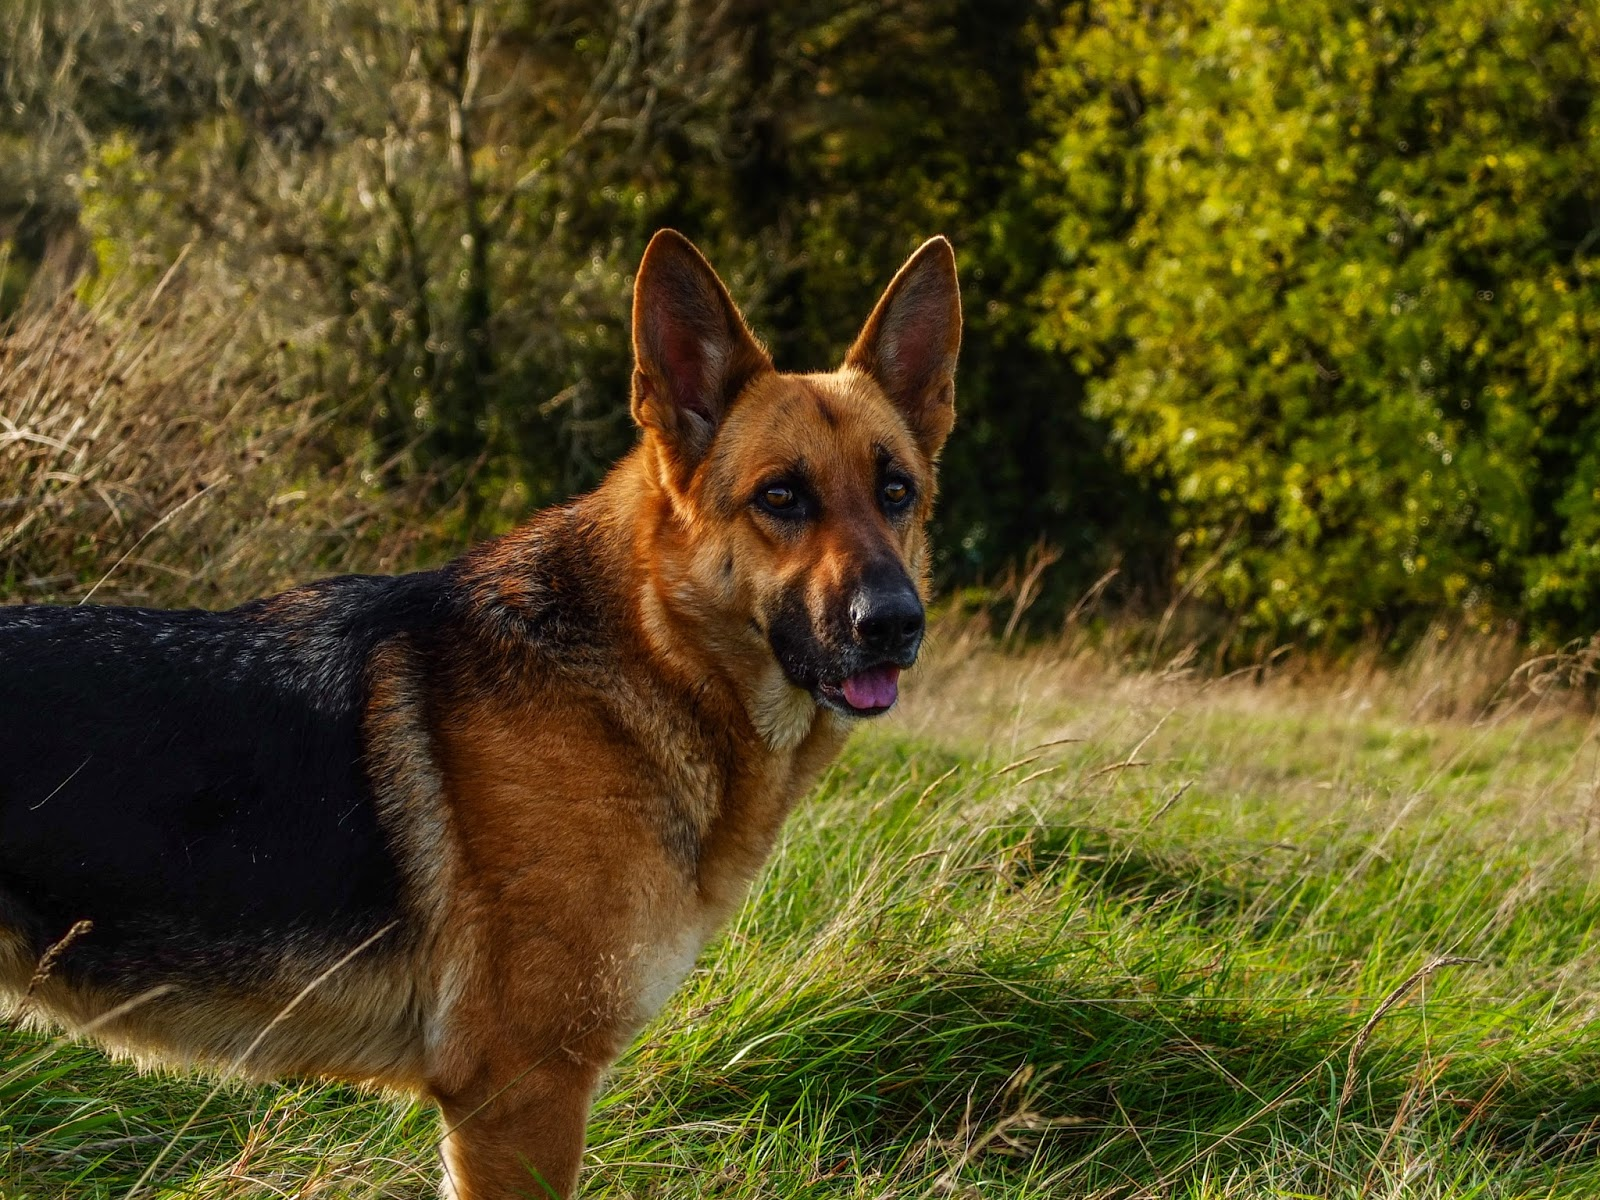 A German Shepherd female standing in the grass on a hill.